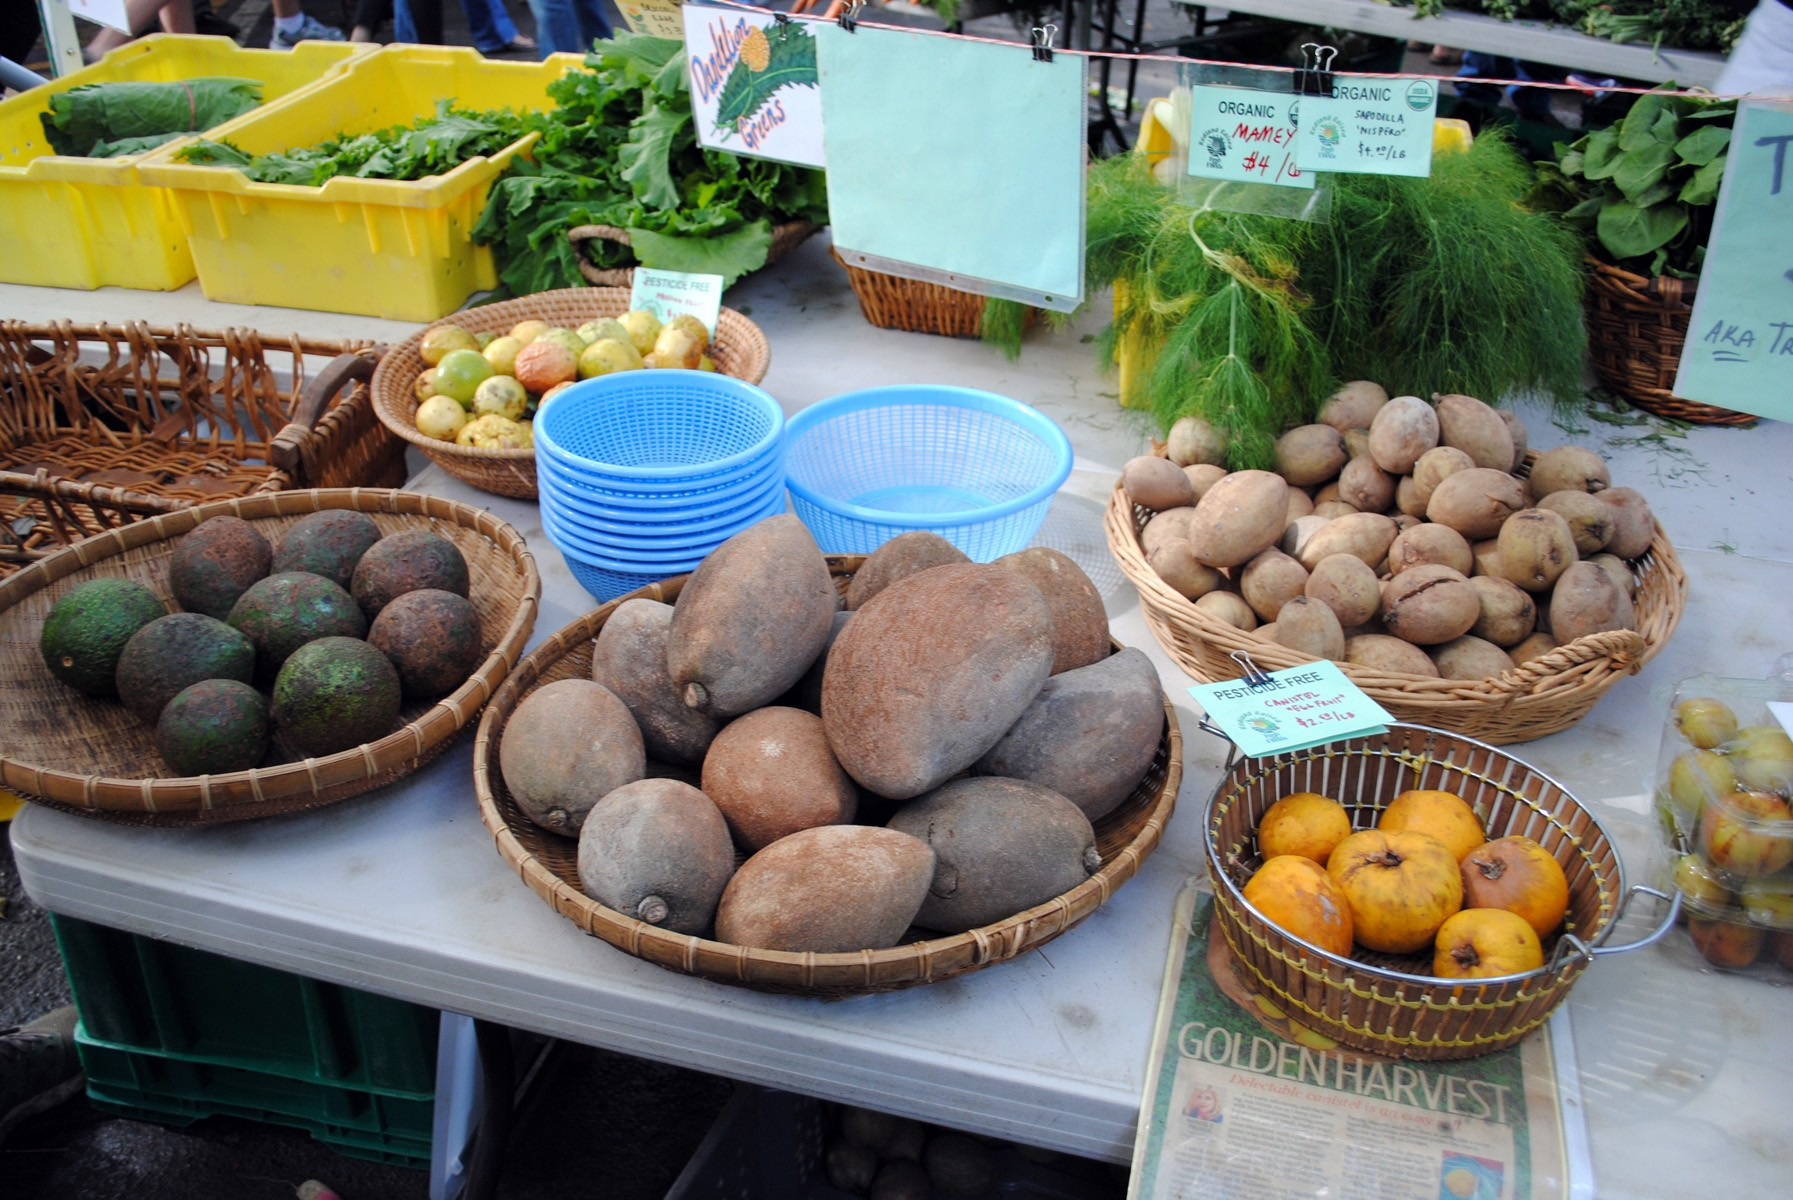 Exotic fruits -for sale at Pinecrest Farmers market in Miami